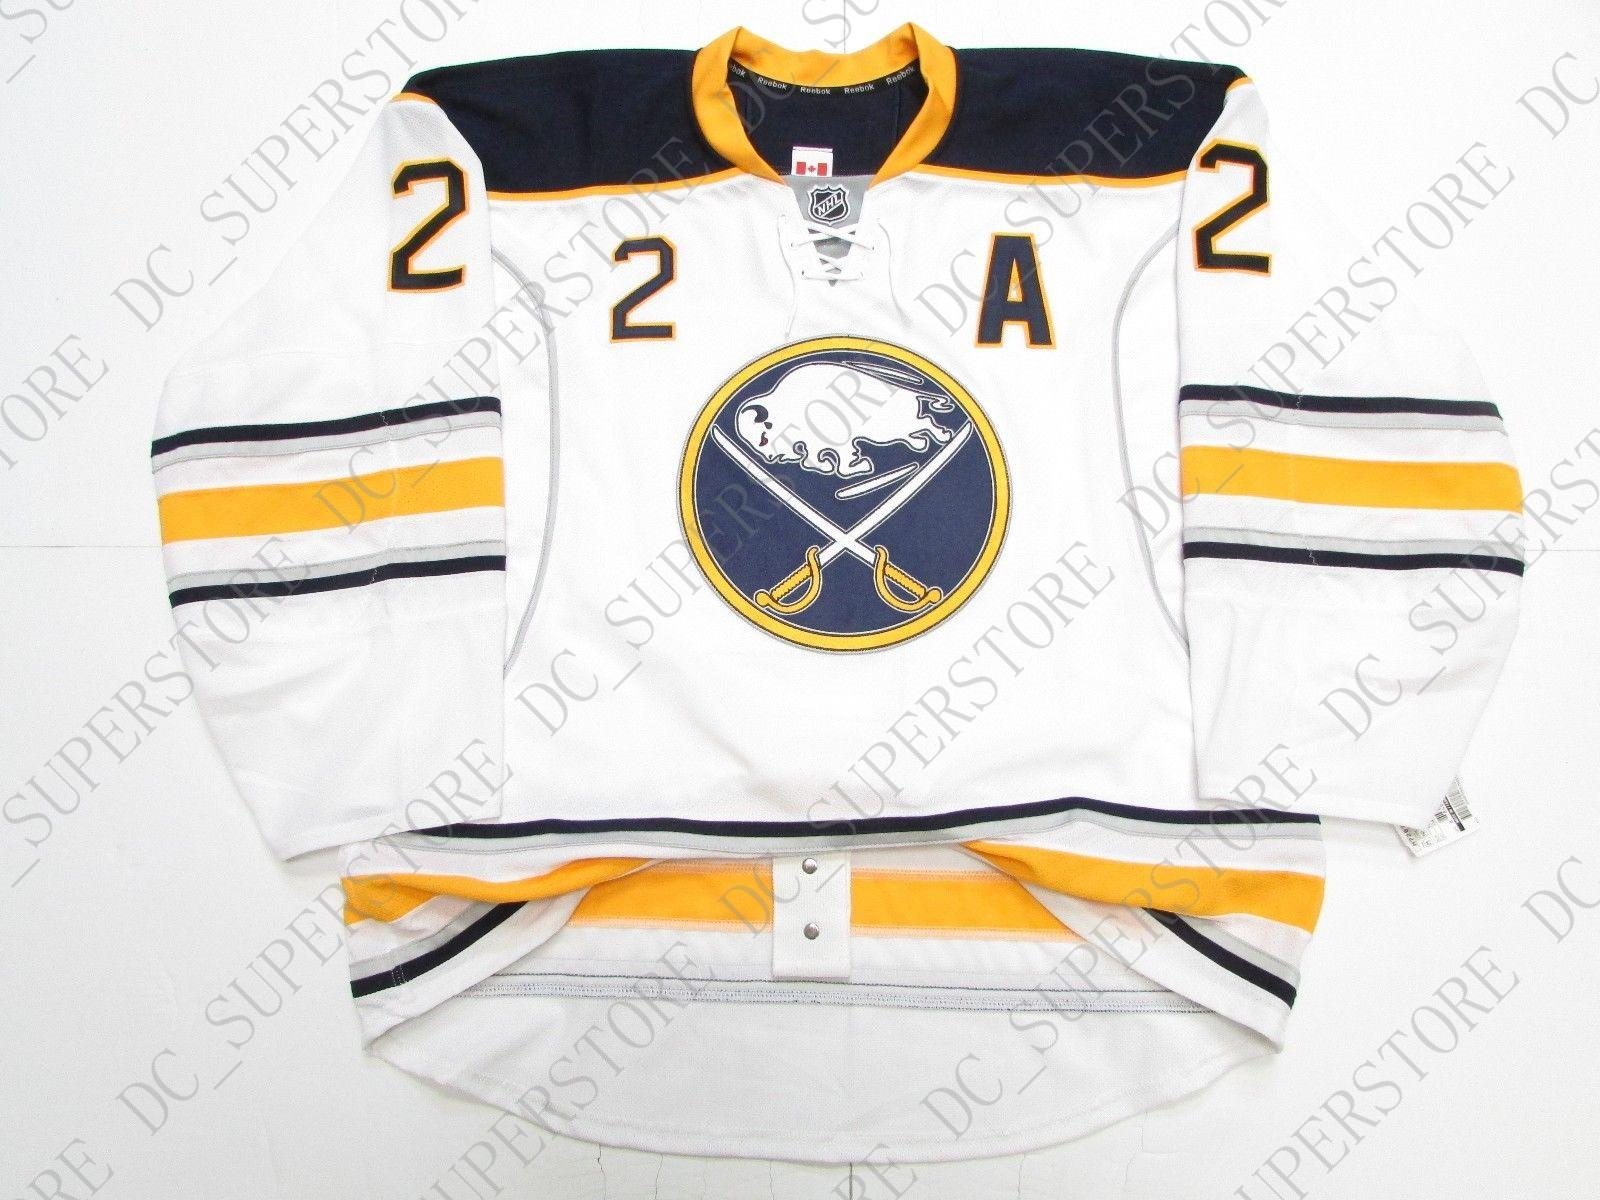 2019 Cheap Custom HORTON 2 BUFFALO SABRES JERSEY Stitch Add Any Number Any  Name Mens Hockey Jersey XS 5XL From Dc superstore db39bbbde82